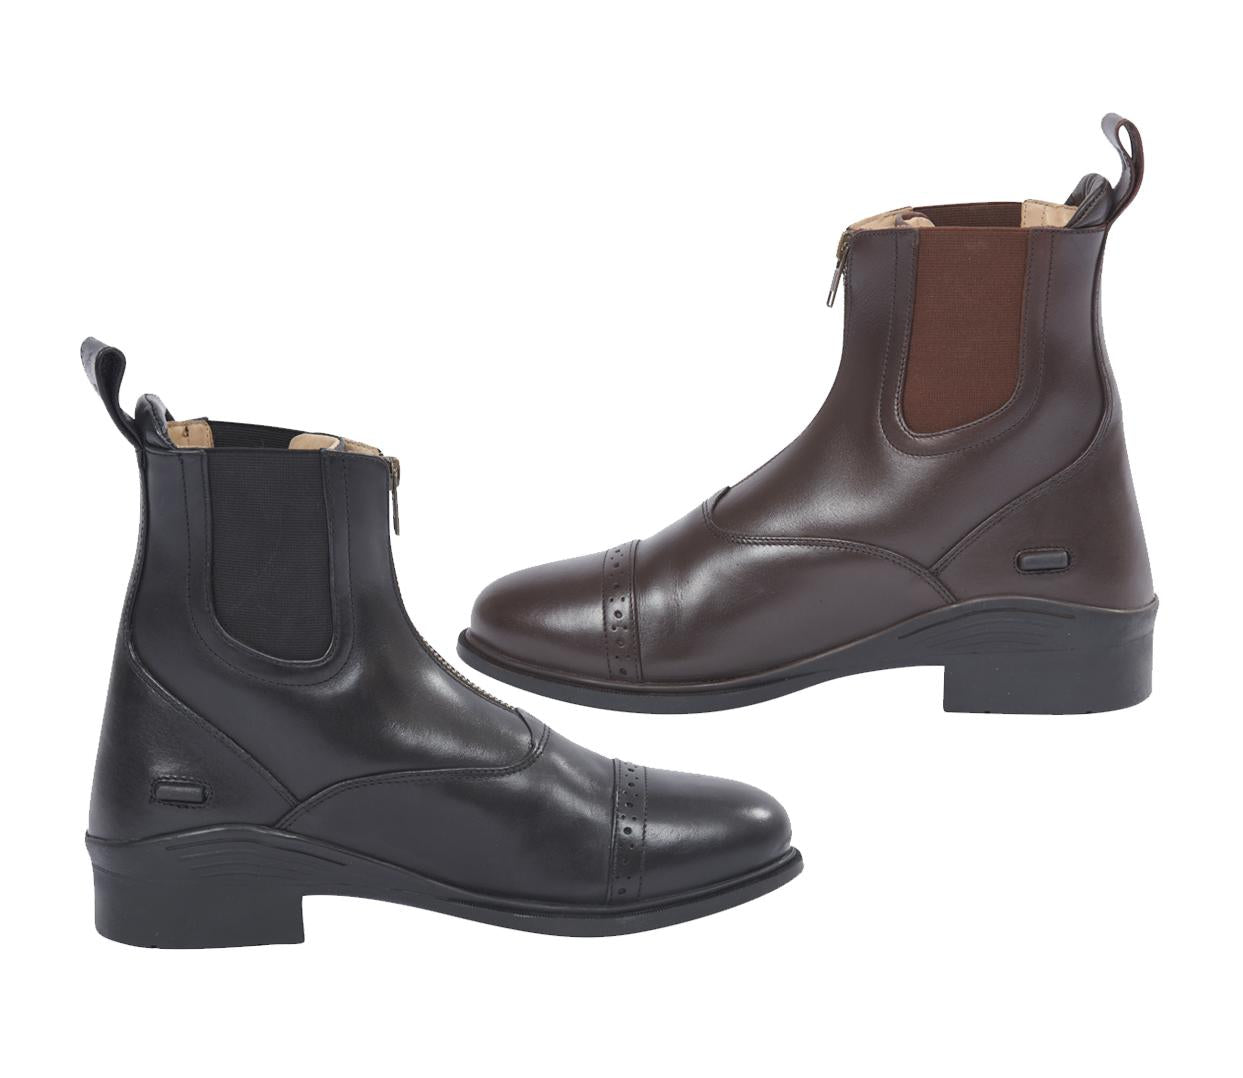 Horse Riding Boots Equestrian Kids Adults Full Leather VOUCHER